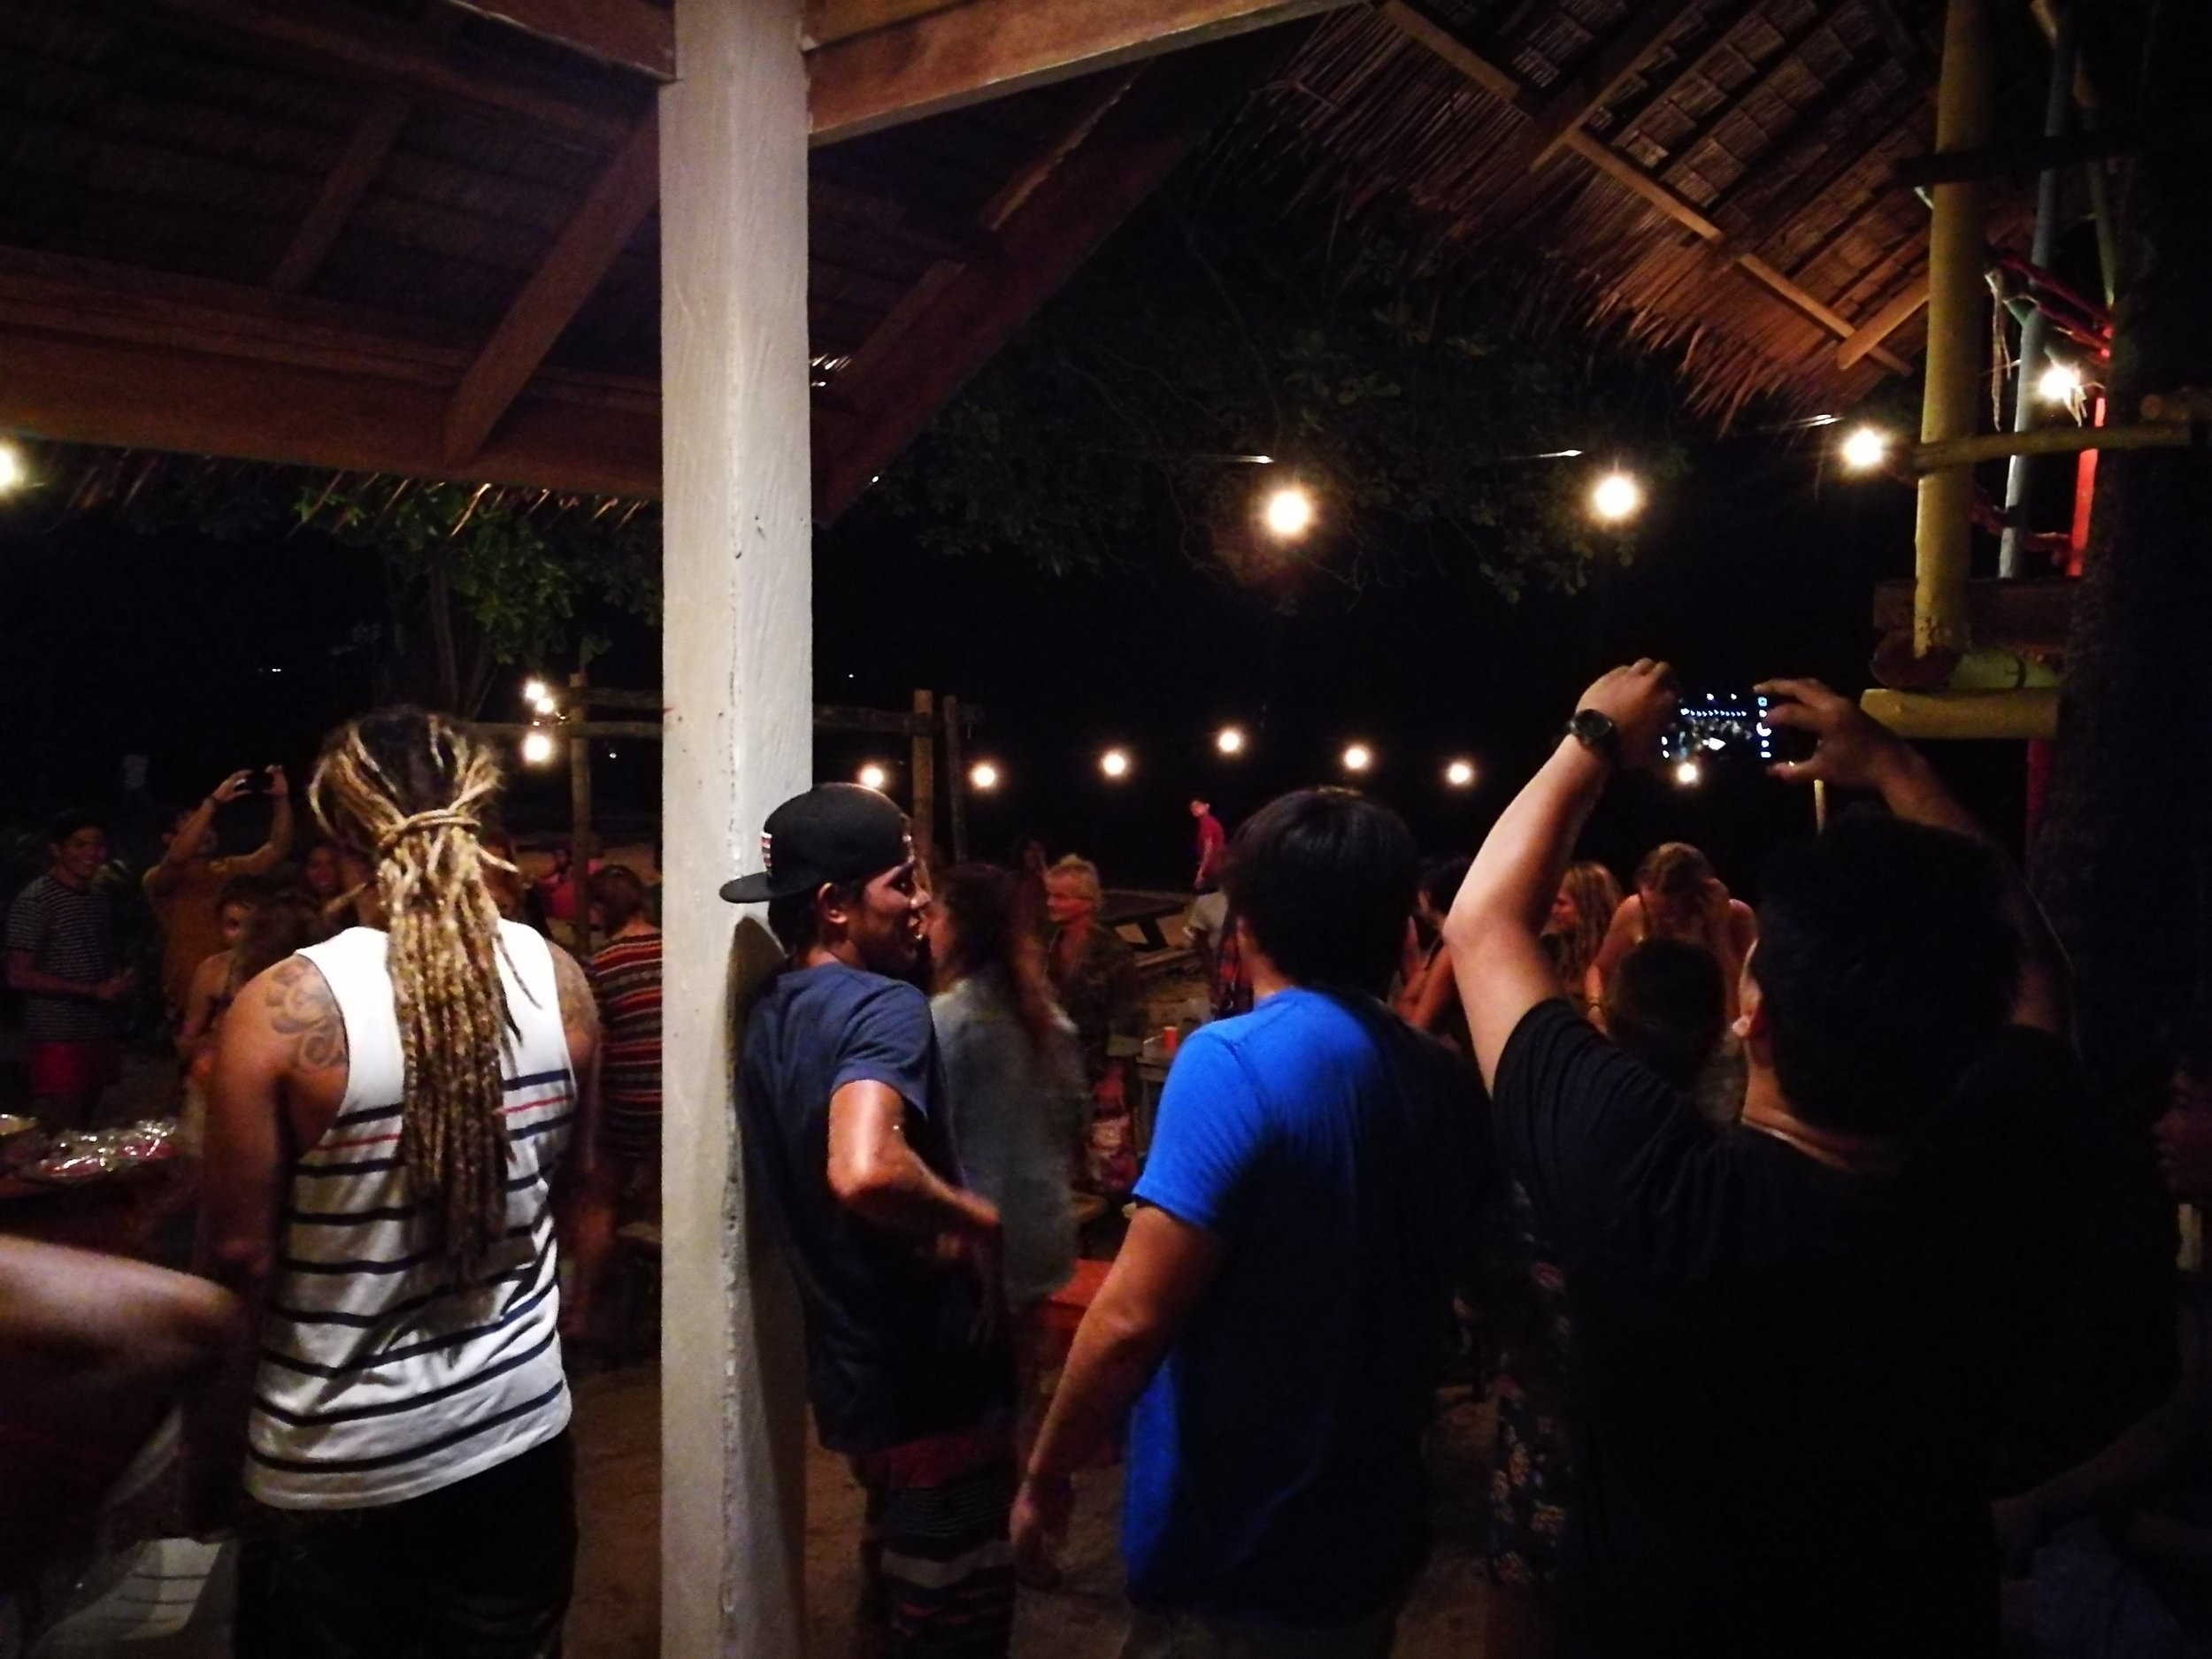 This wasn't even the party proper - this was still dinner! Can't wait for the next event at the Surf Shack!